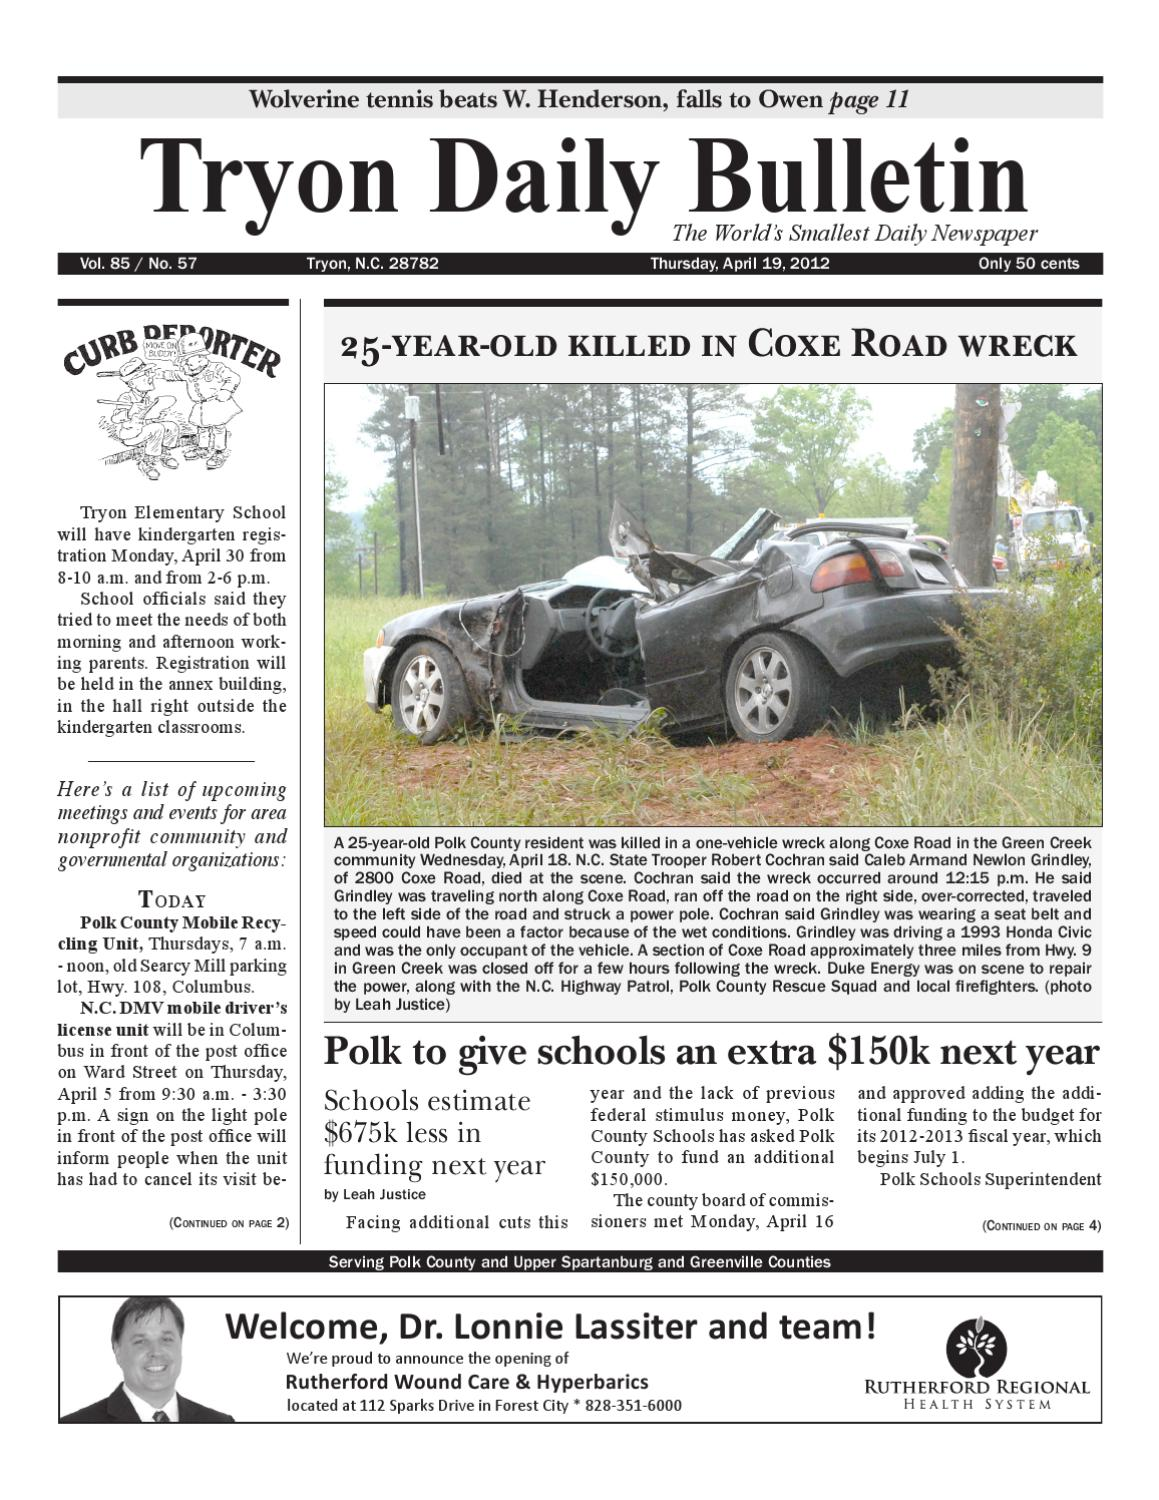 4 19 12 Bulletin By Tryon Daily Issuu Small Snack Time Acs Tlt Series